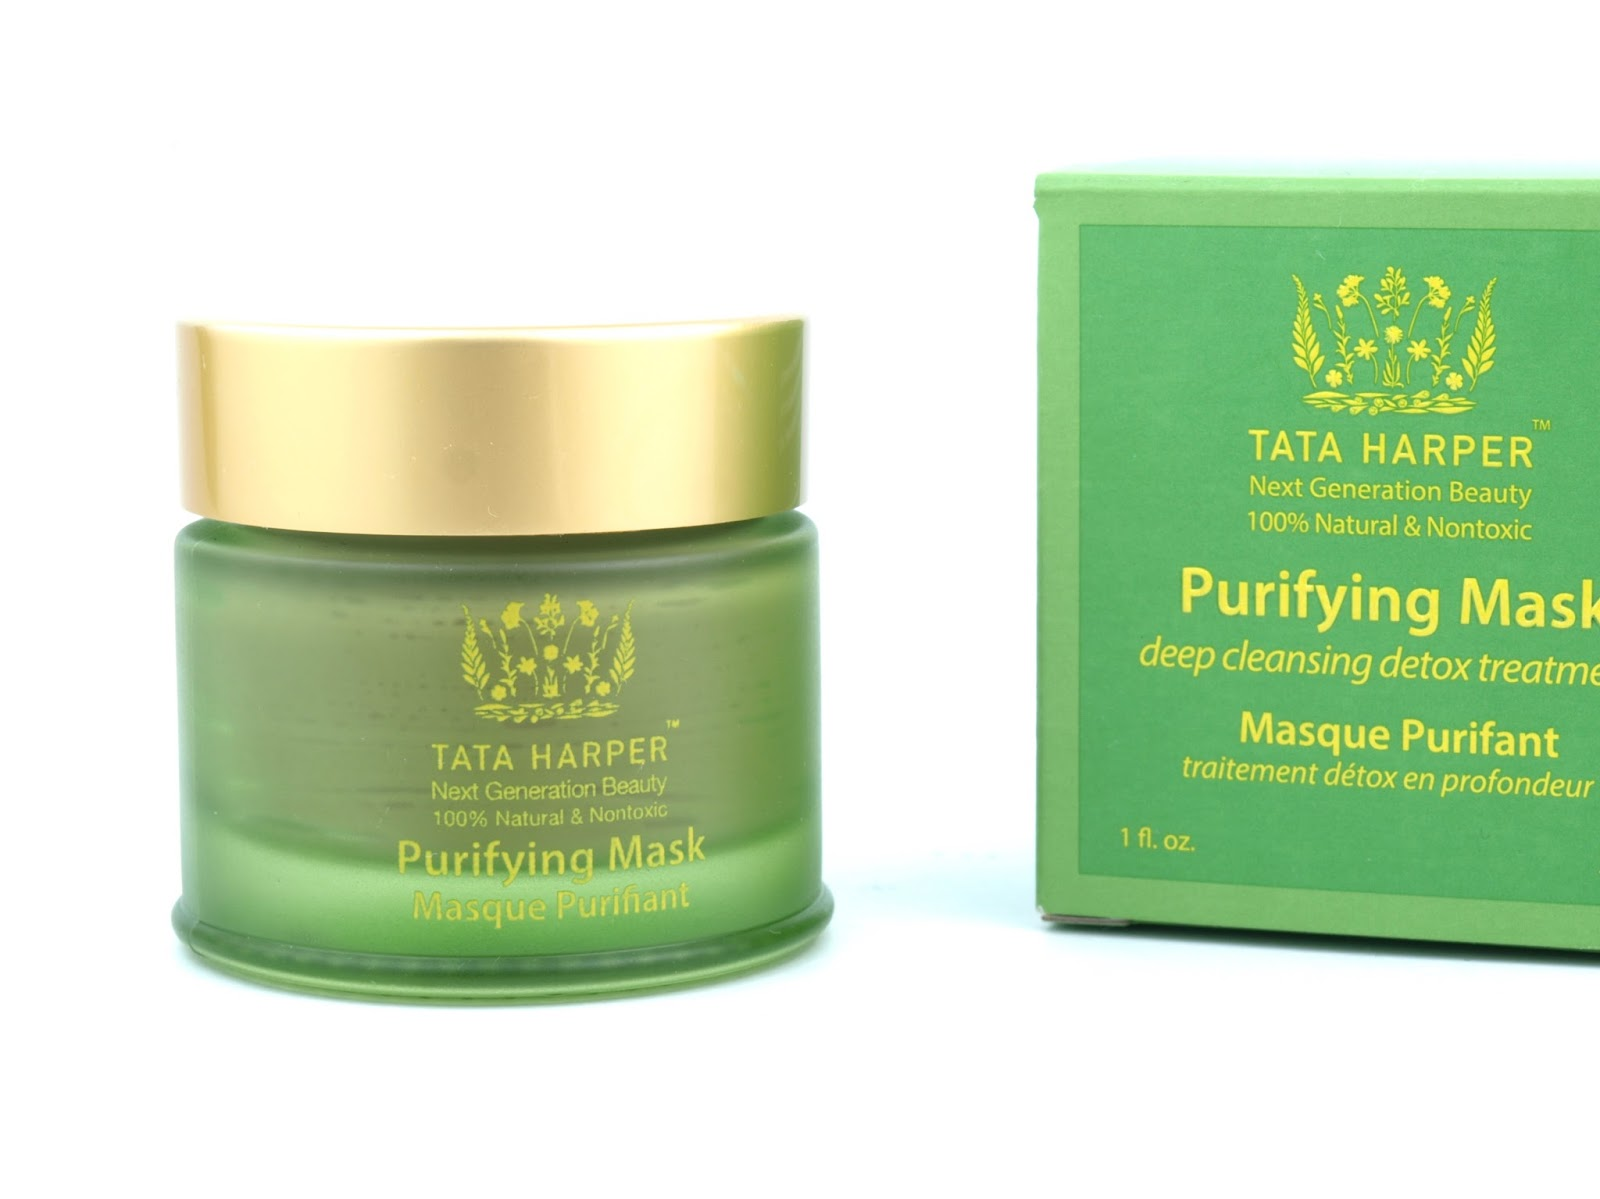 Purifying Mask by tata harper #12